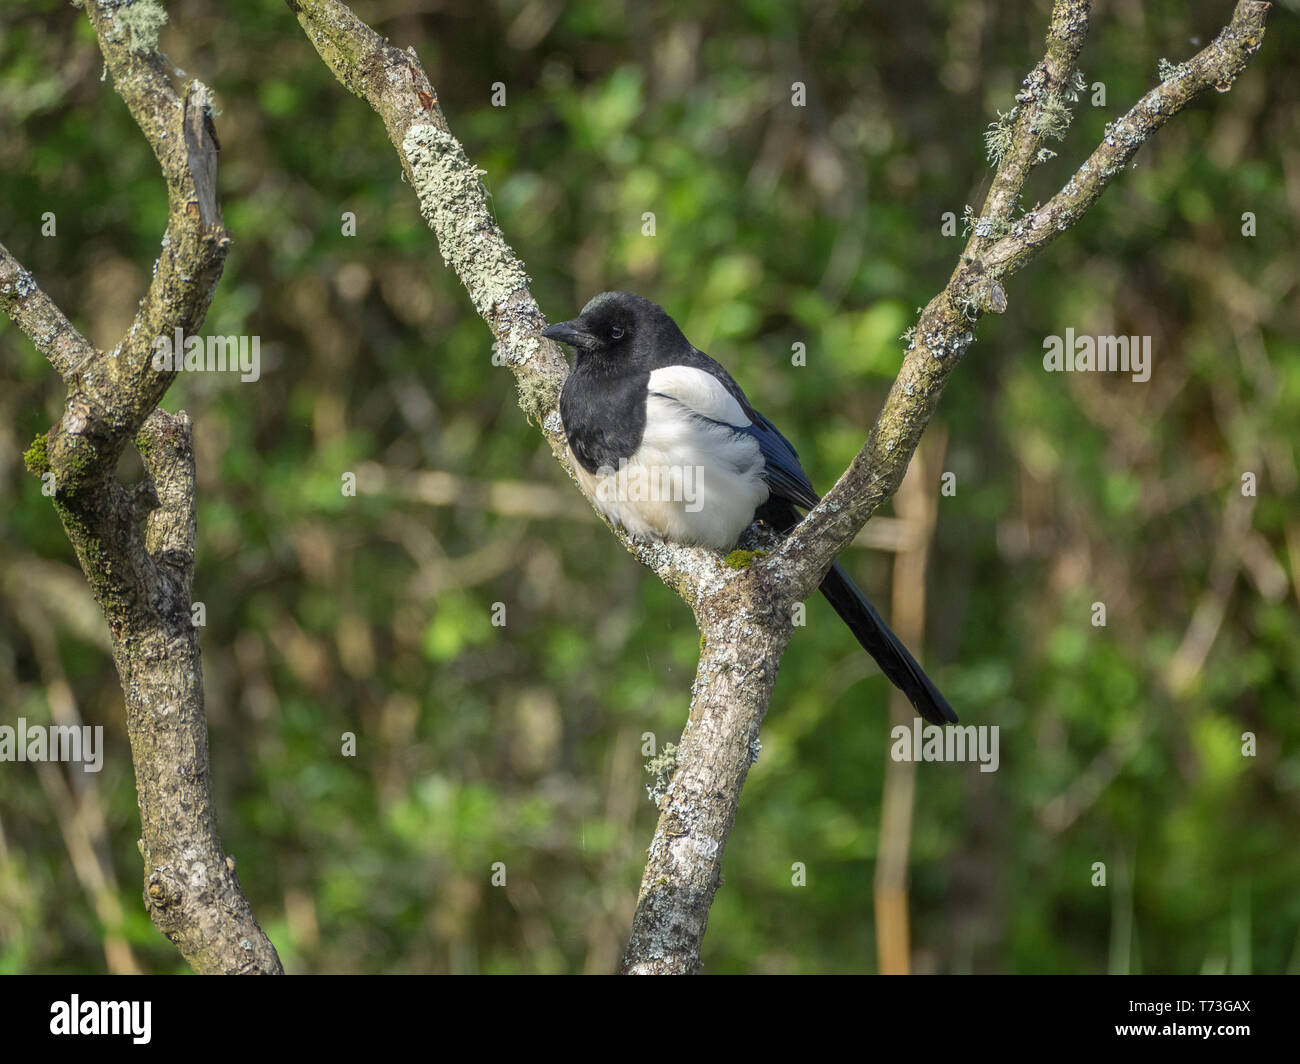 Magpie on perch Stock Photo